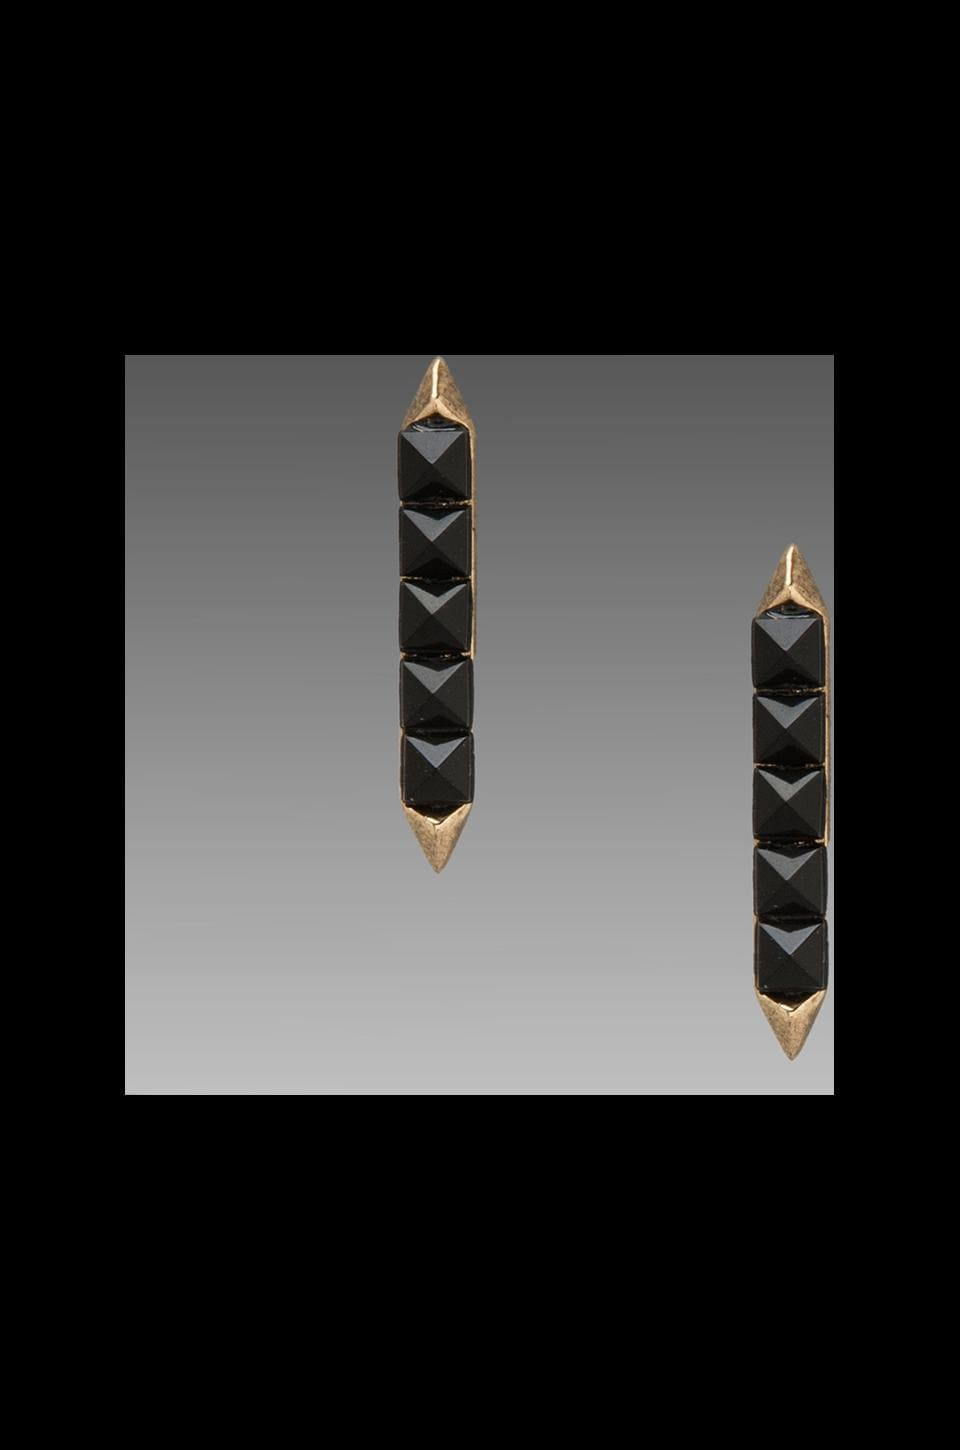 House of Harlow 1960 House of Harlow Seer's Earrings in Gold/Black